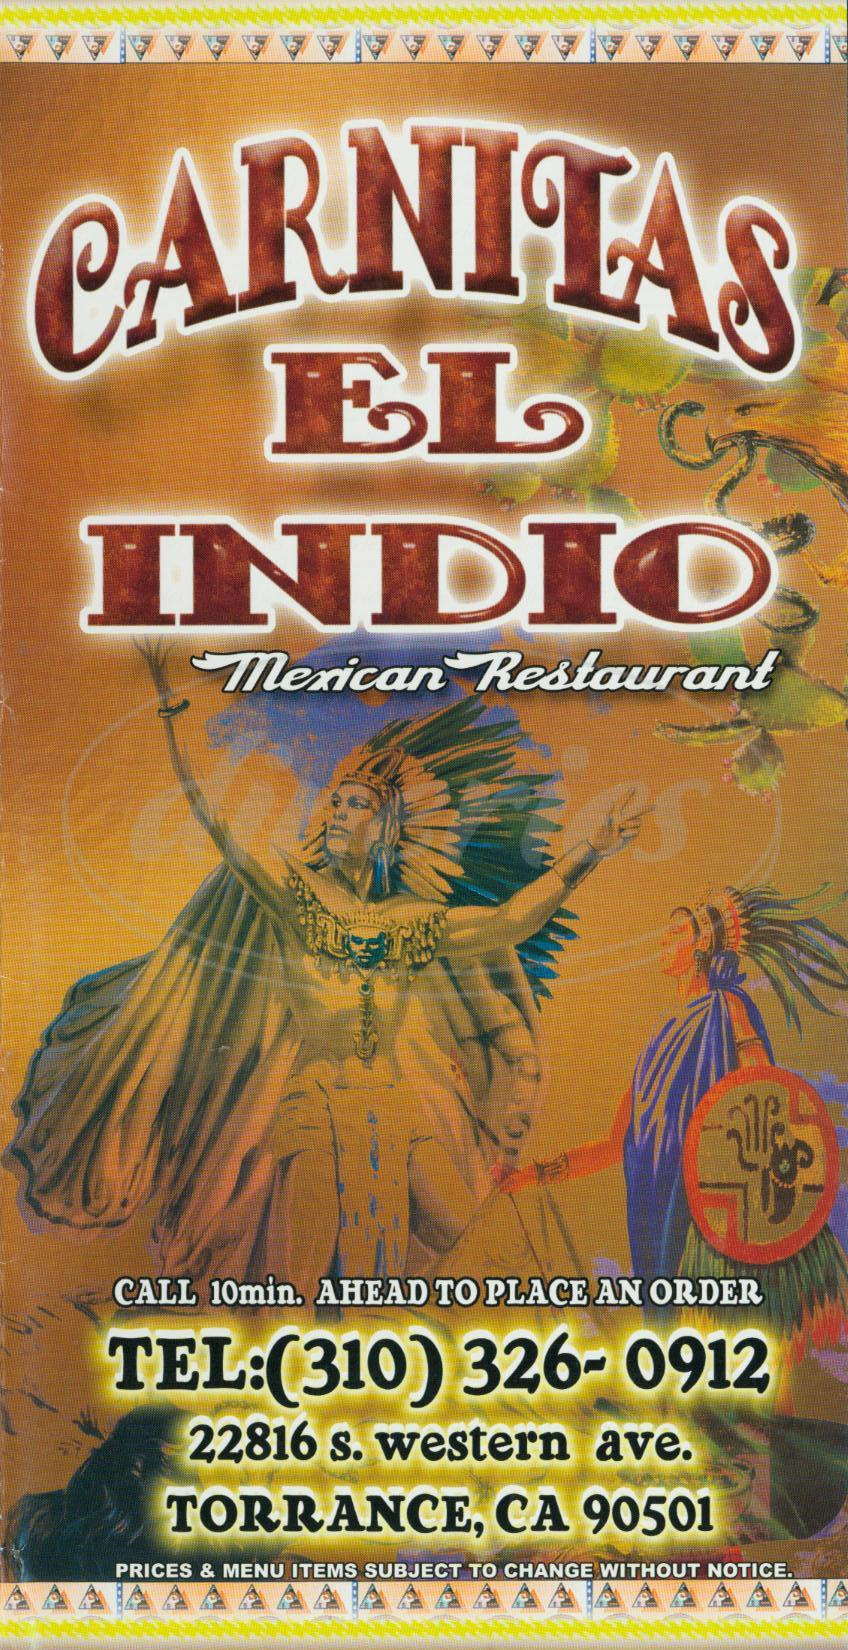 menu for Carnitas el Indio